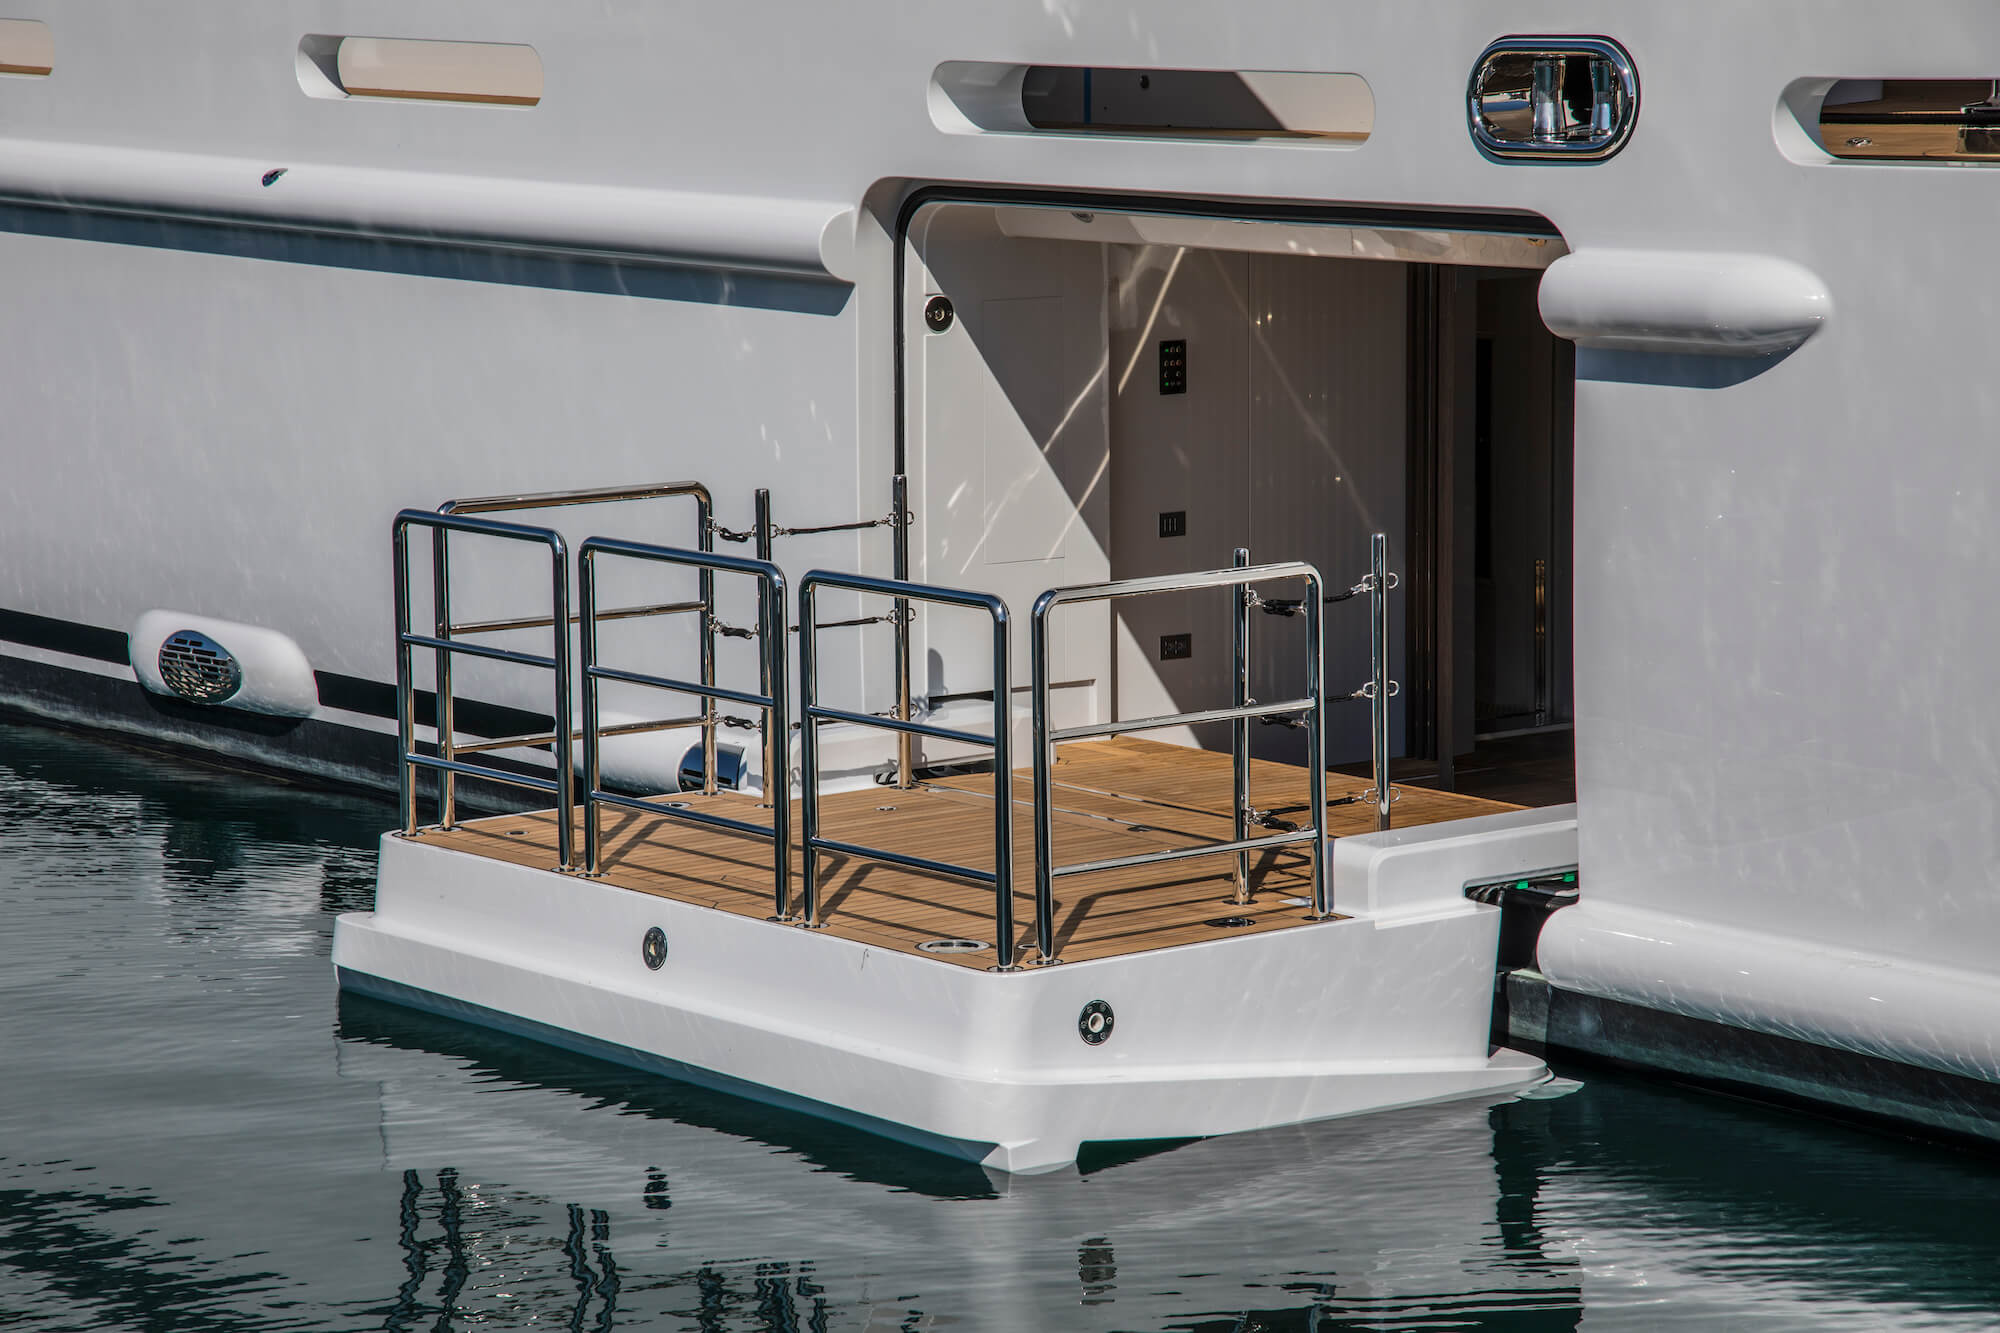 Navim Group designing and manufacturing marine equipment for Mega Yachts and Luxury Yachts